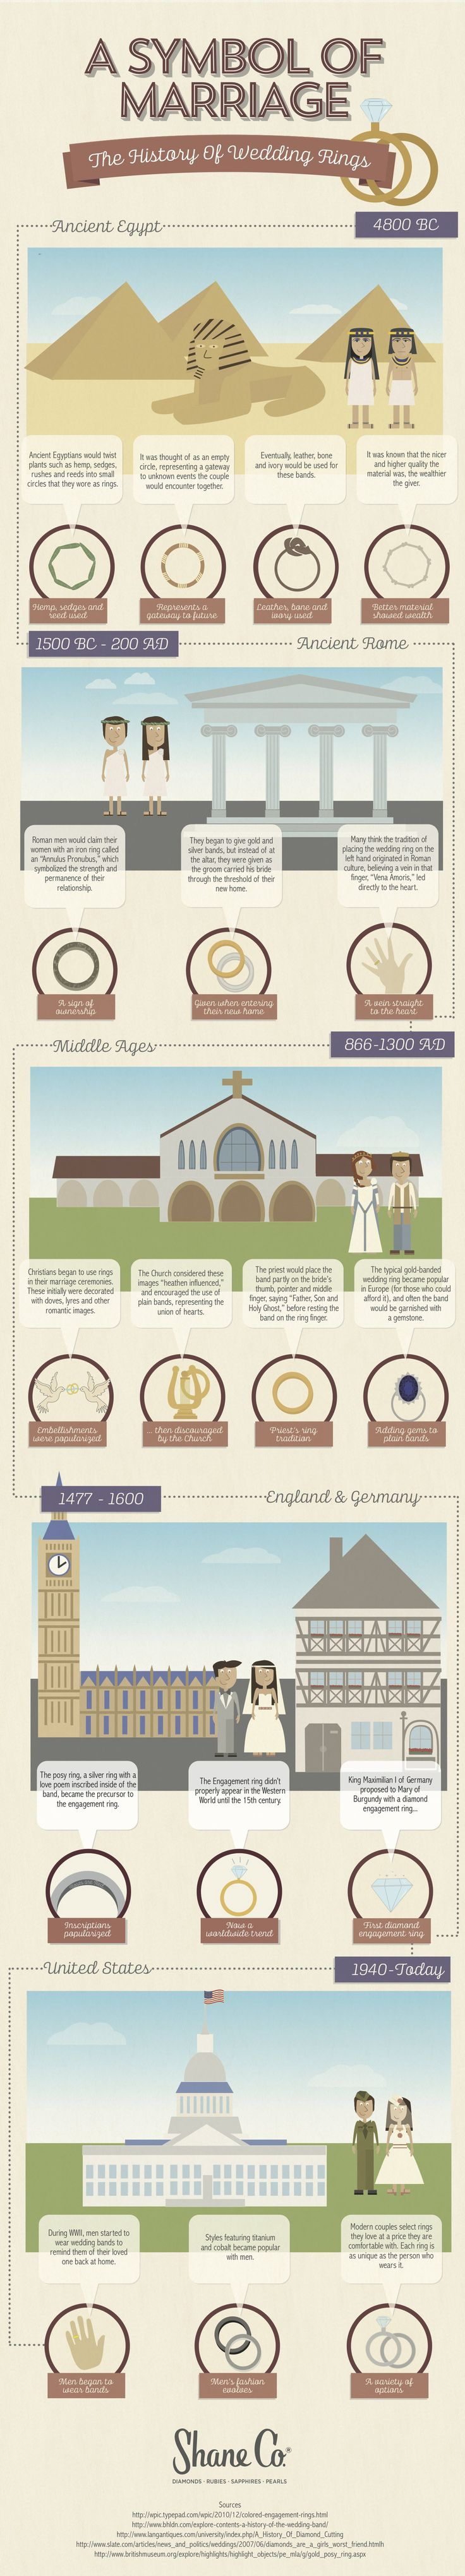 History of Wedding Rings Infographic                                                                                                                                                                                 More